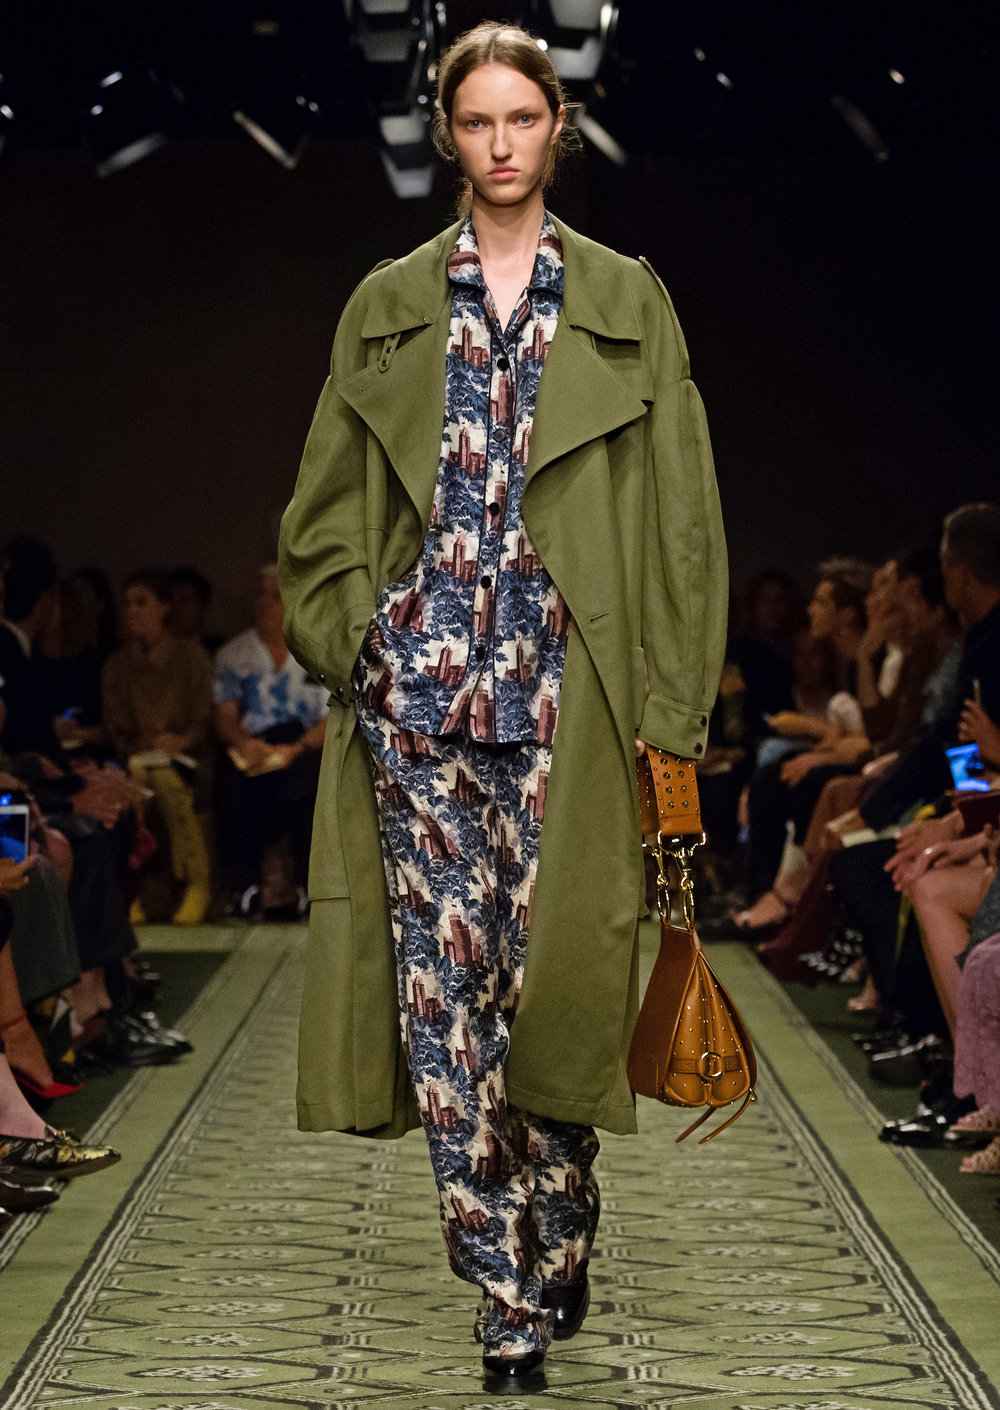 Burberry September 2016 Collection - Look 22.jpg